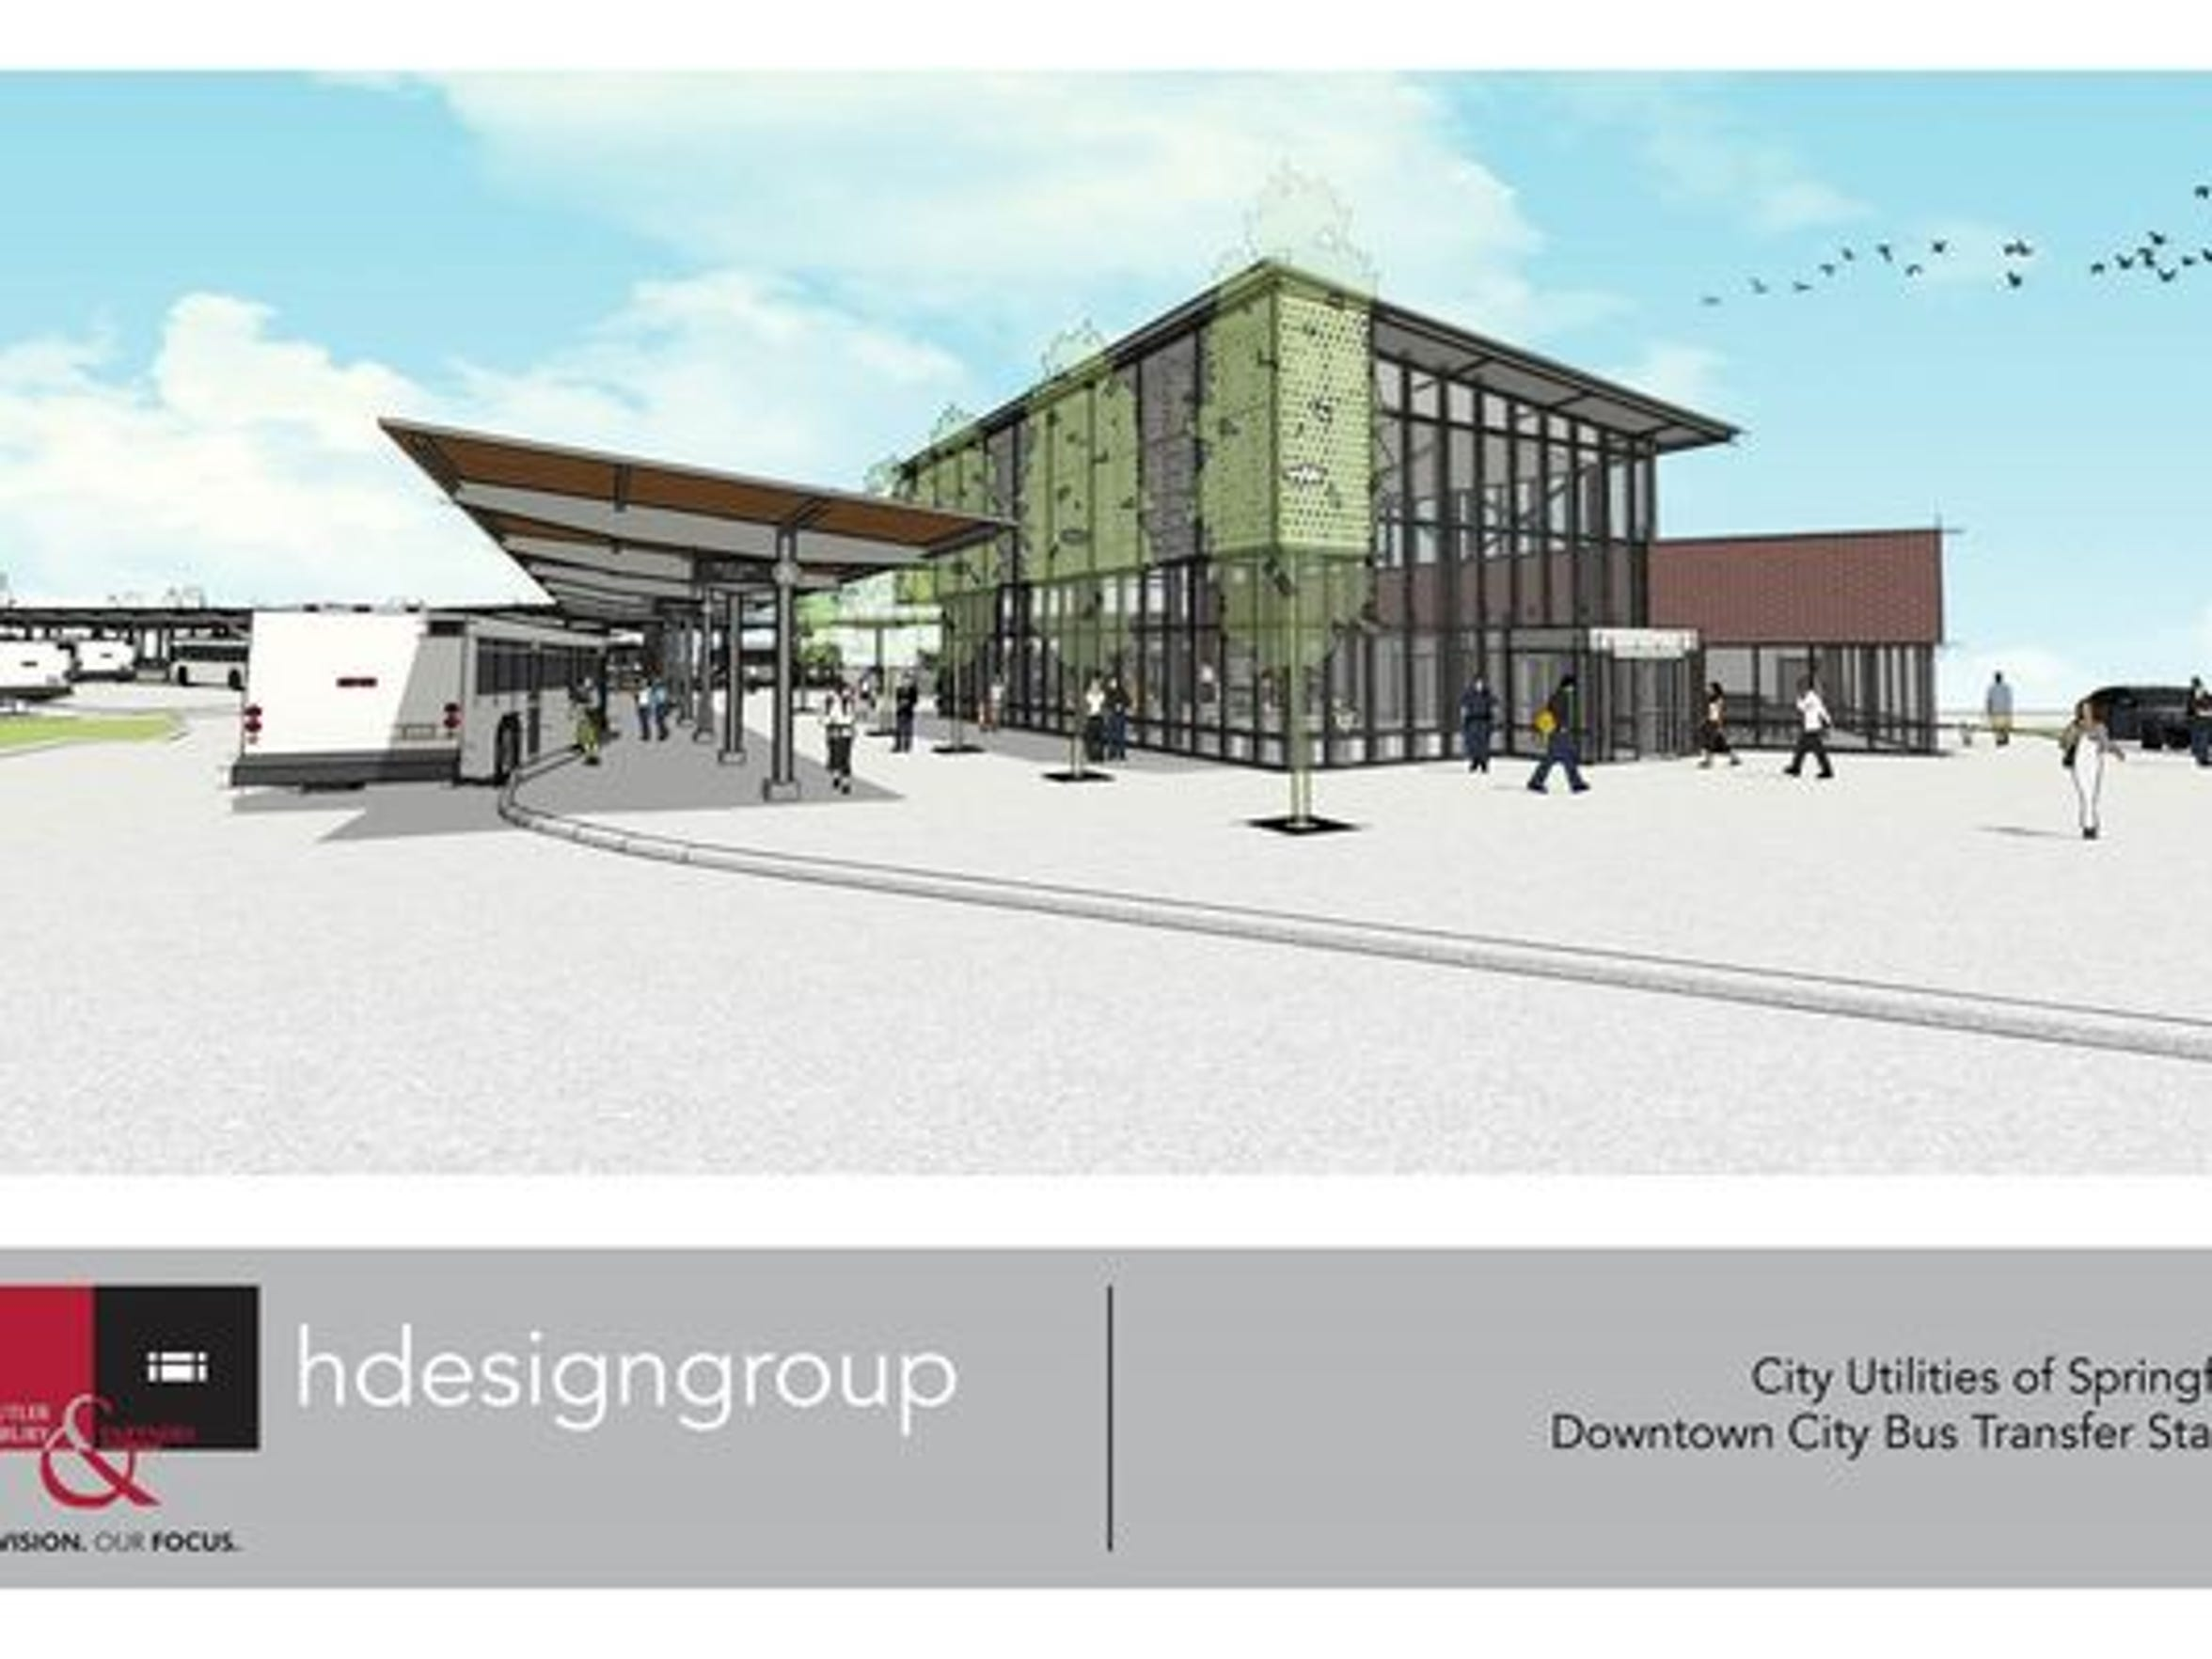 CU shows off planned design of new bus transfer station